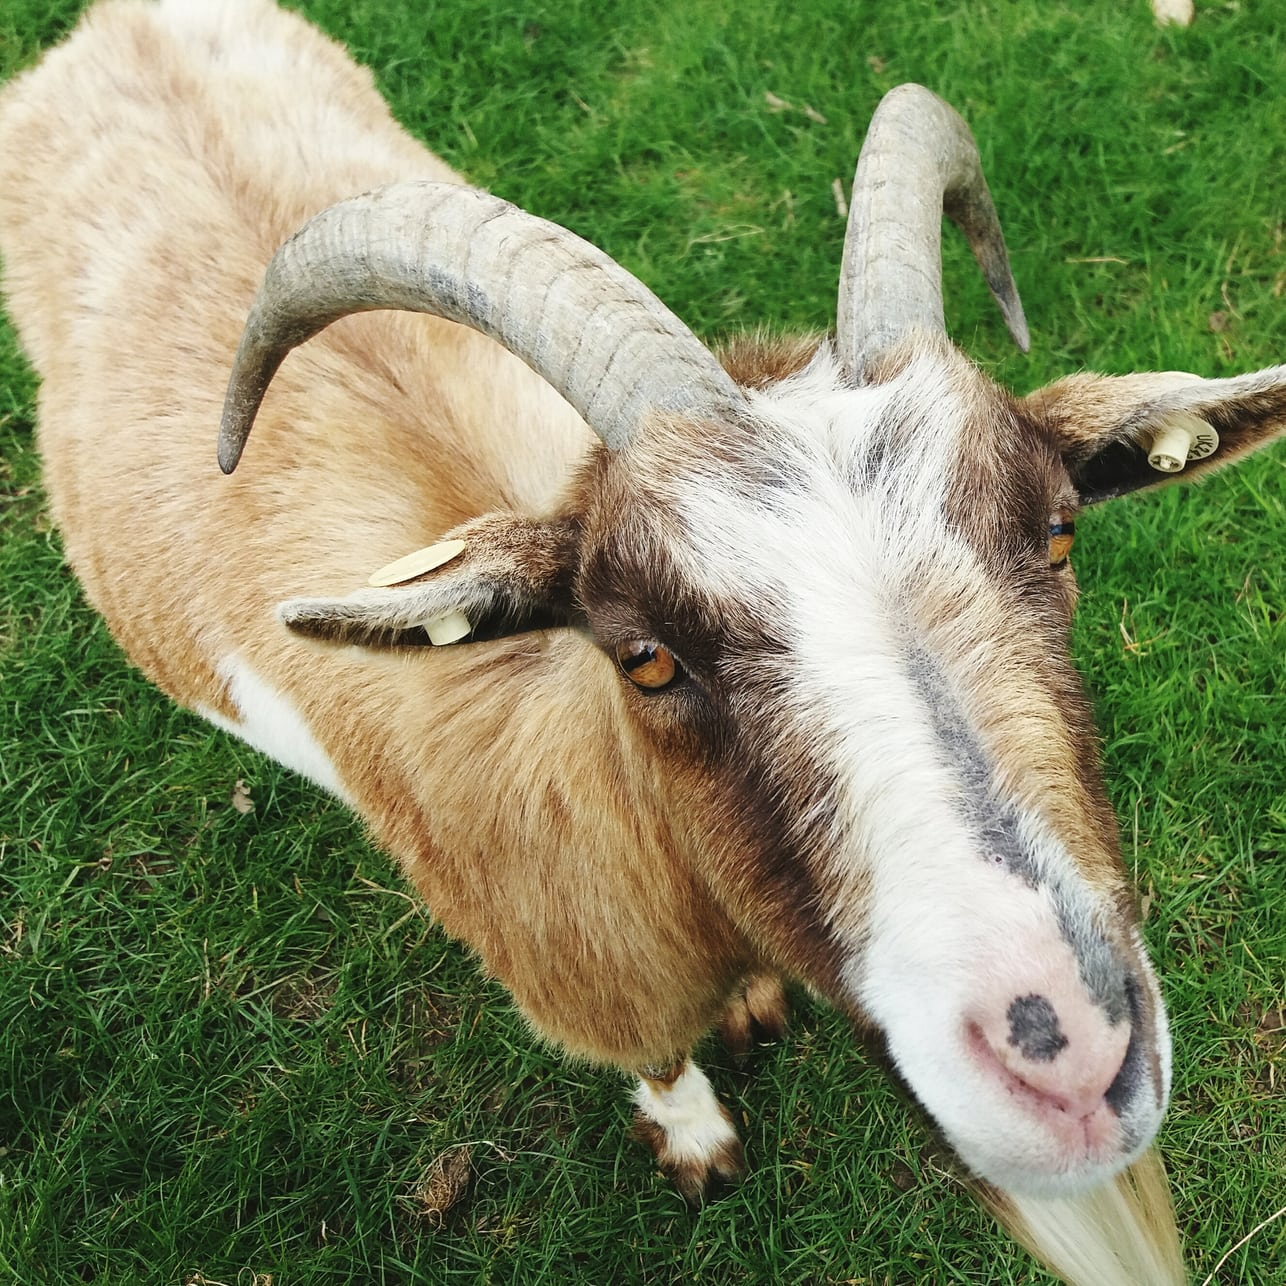 close-up of goat from a high angle